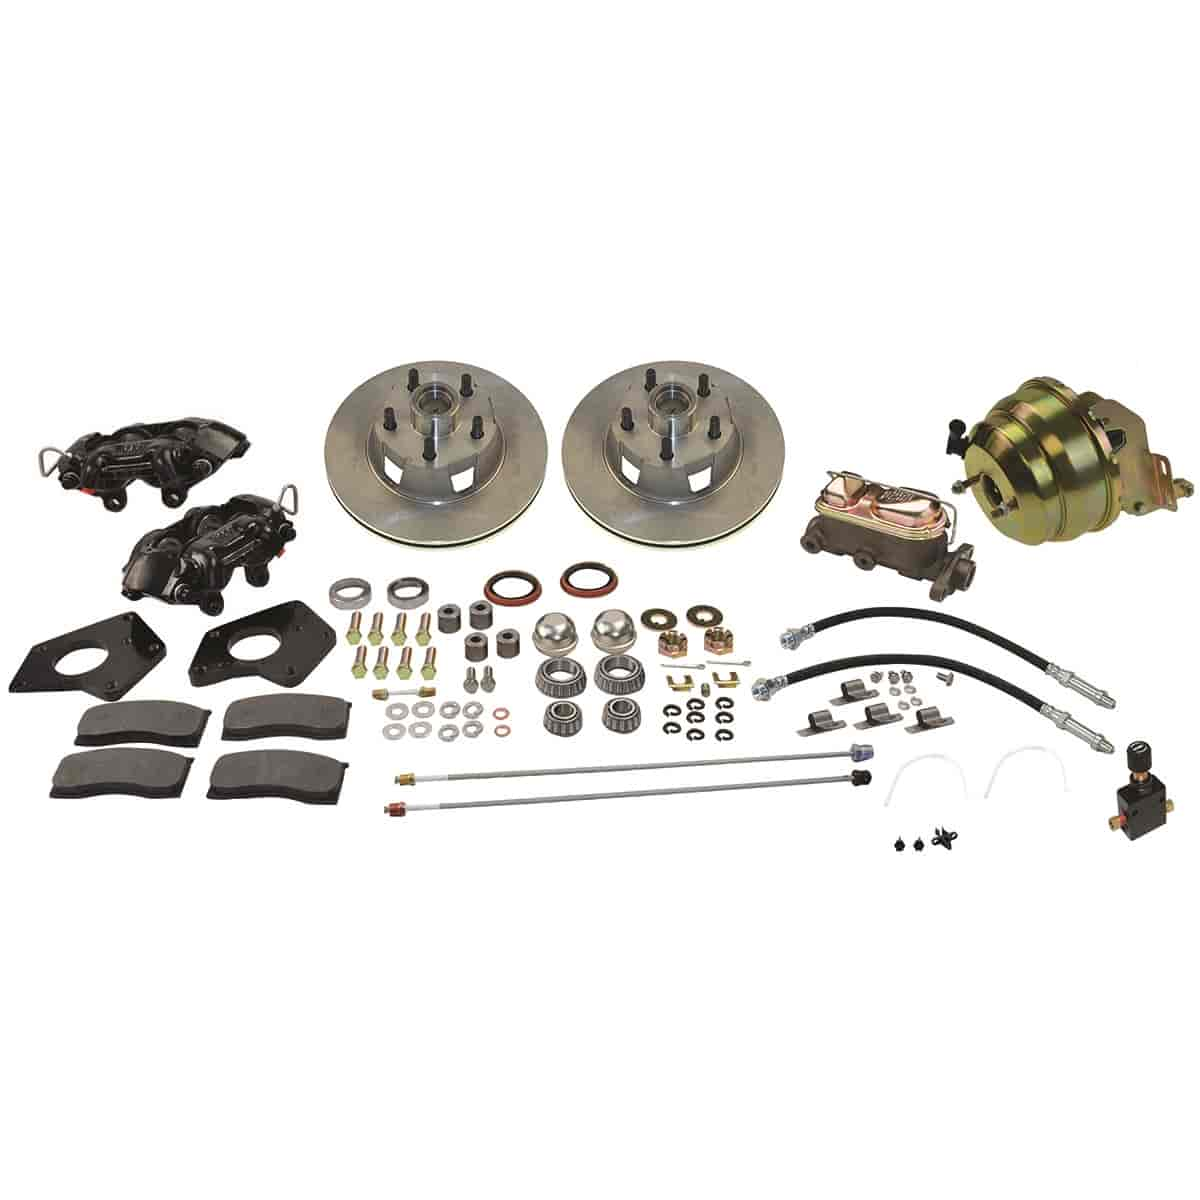 SSBC Front 4-Piston Drum to Disc Brake Conversion Kit See More Details For  Applications